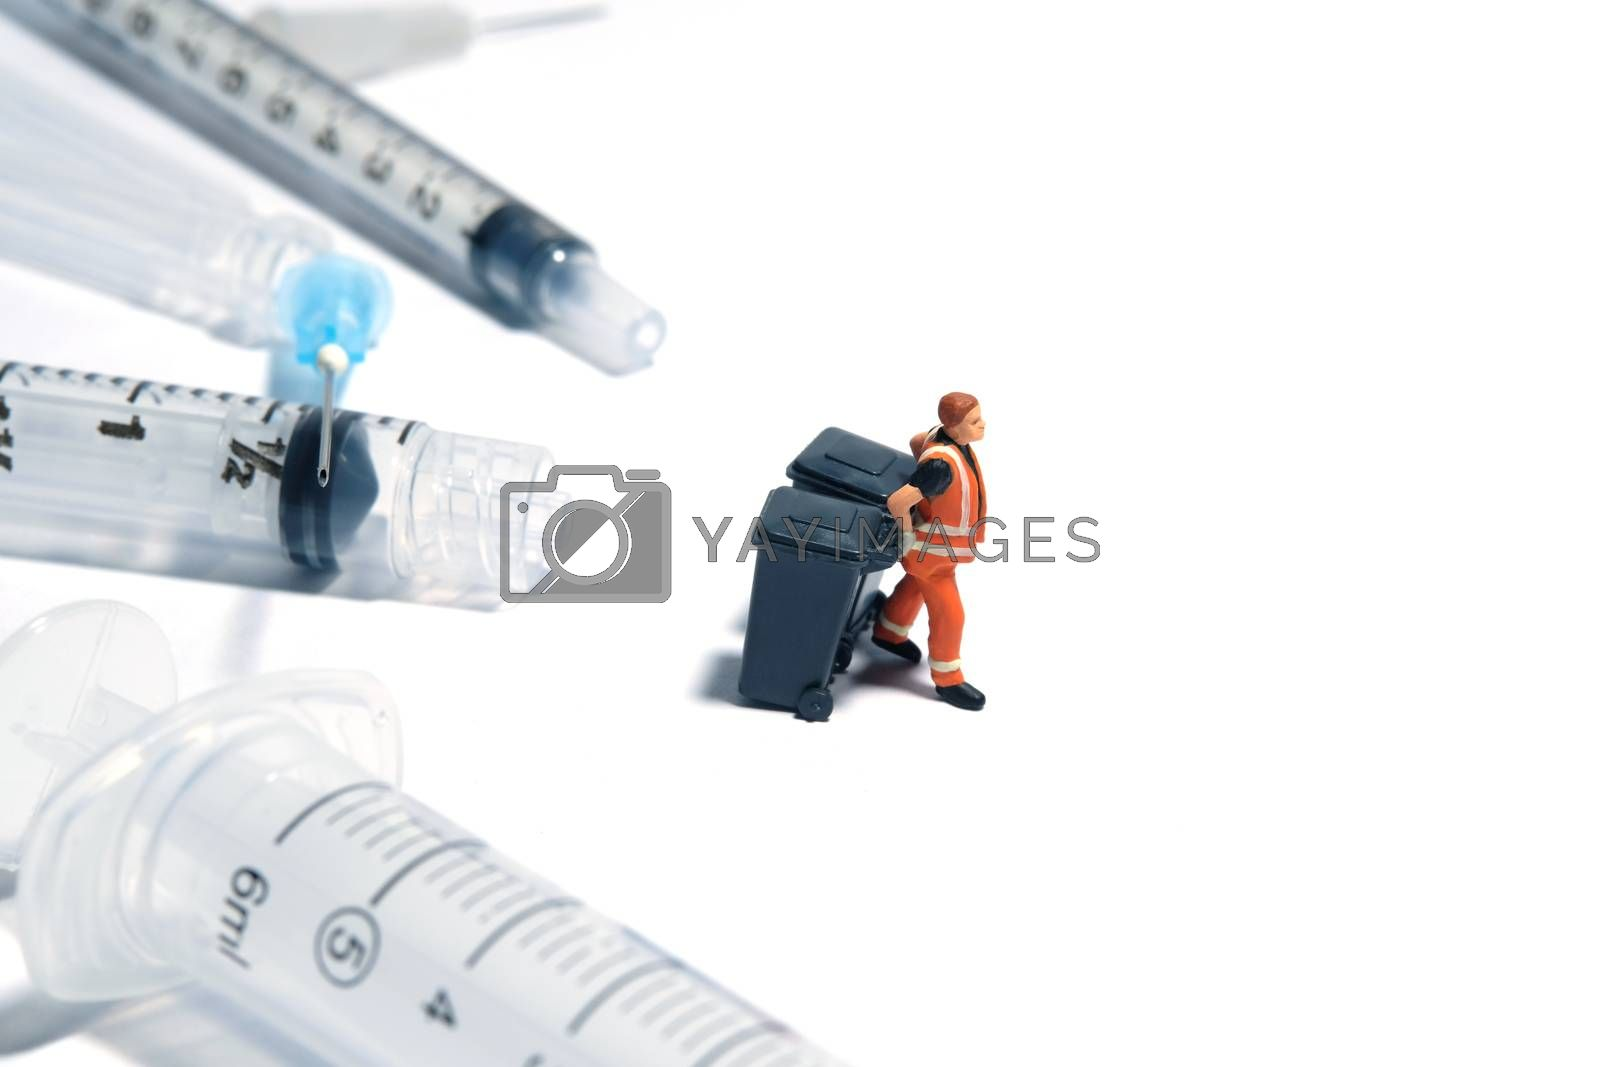 Cleaning workers pulling trash bin, in front of syringe that has been used. Medical waste conceptual photo. Miniature people photography.